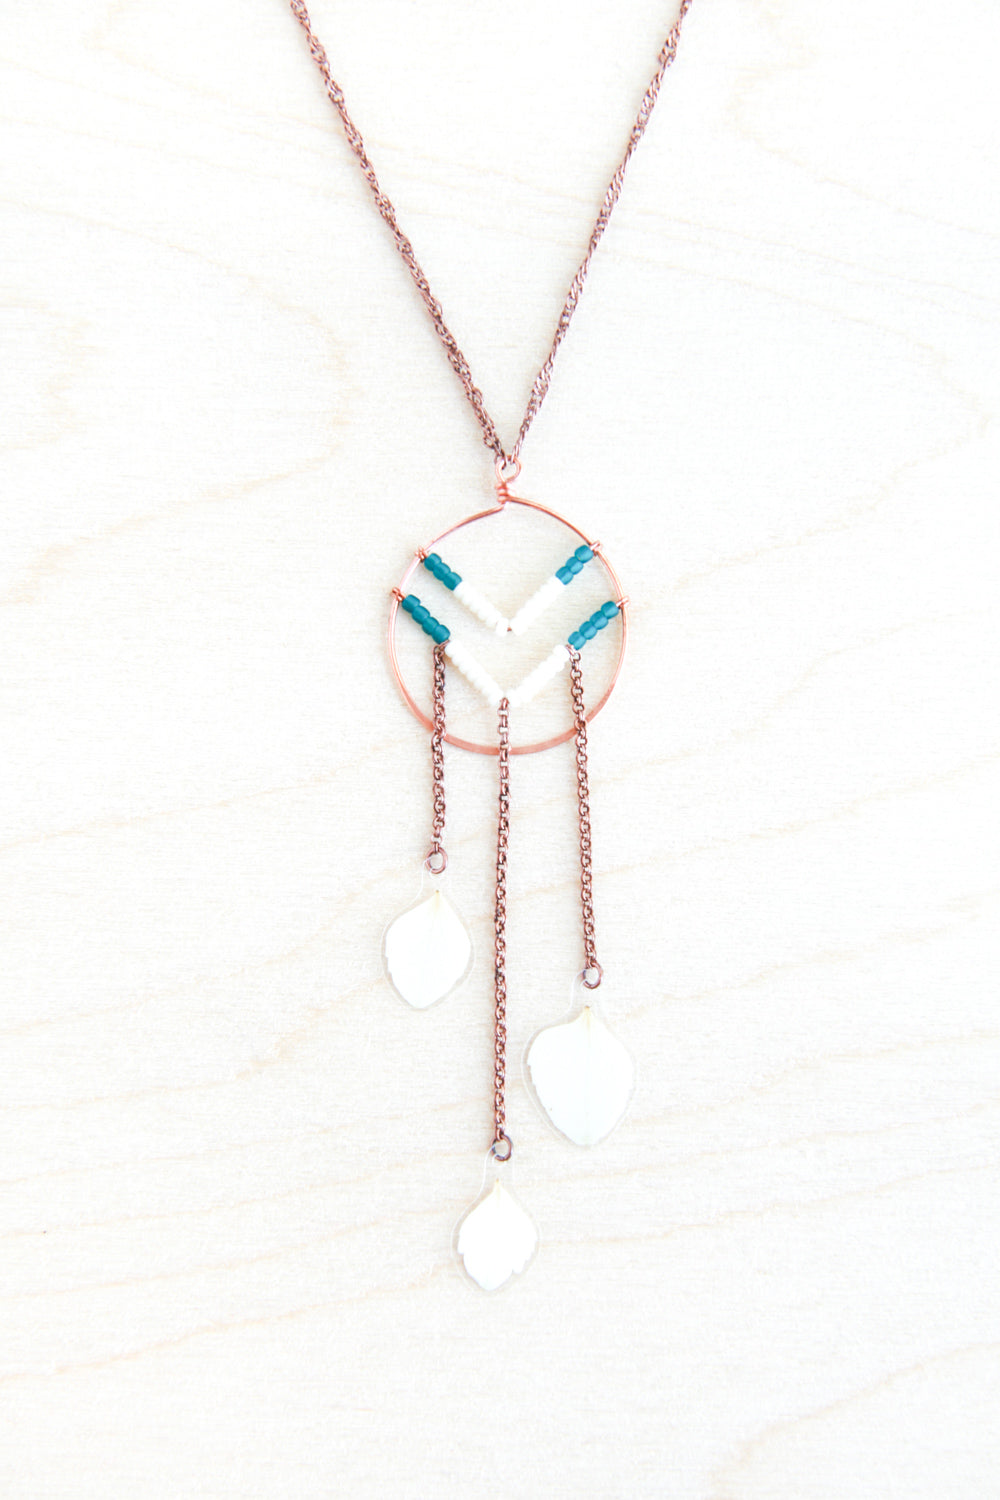 White Hydrangea Pressed Petal Necklace with Beaded Chevron & Copper Hoop - Teal & Cream